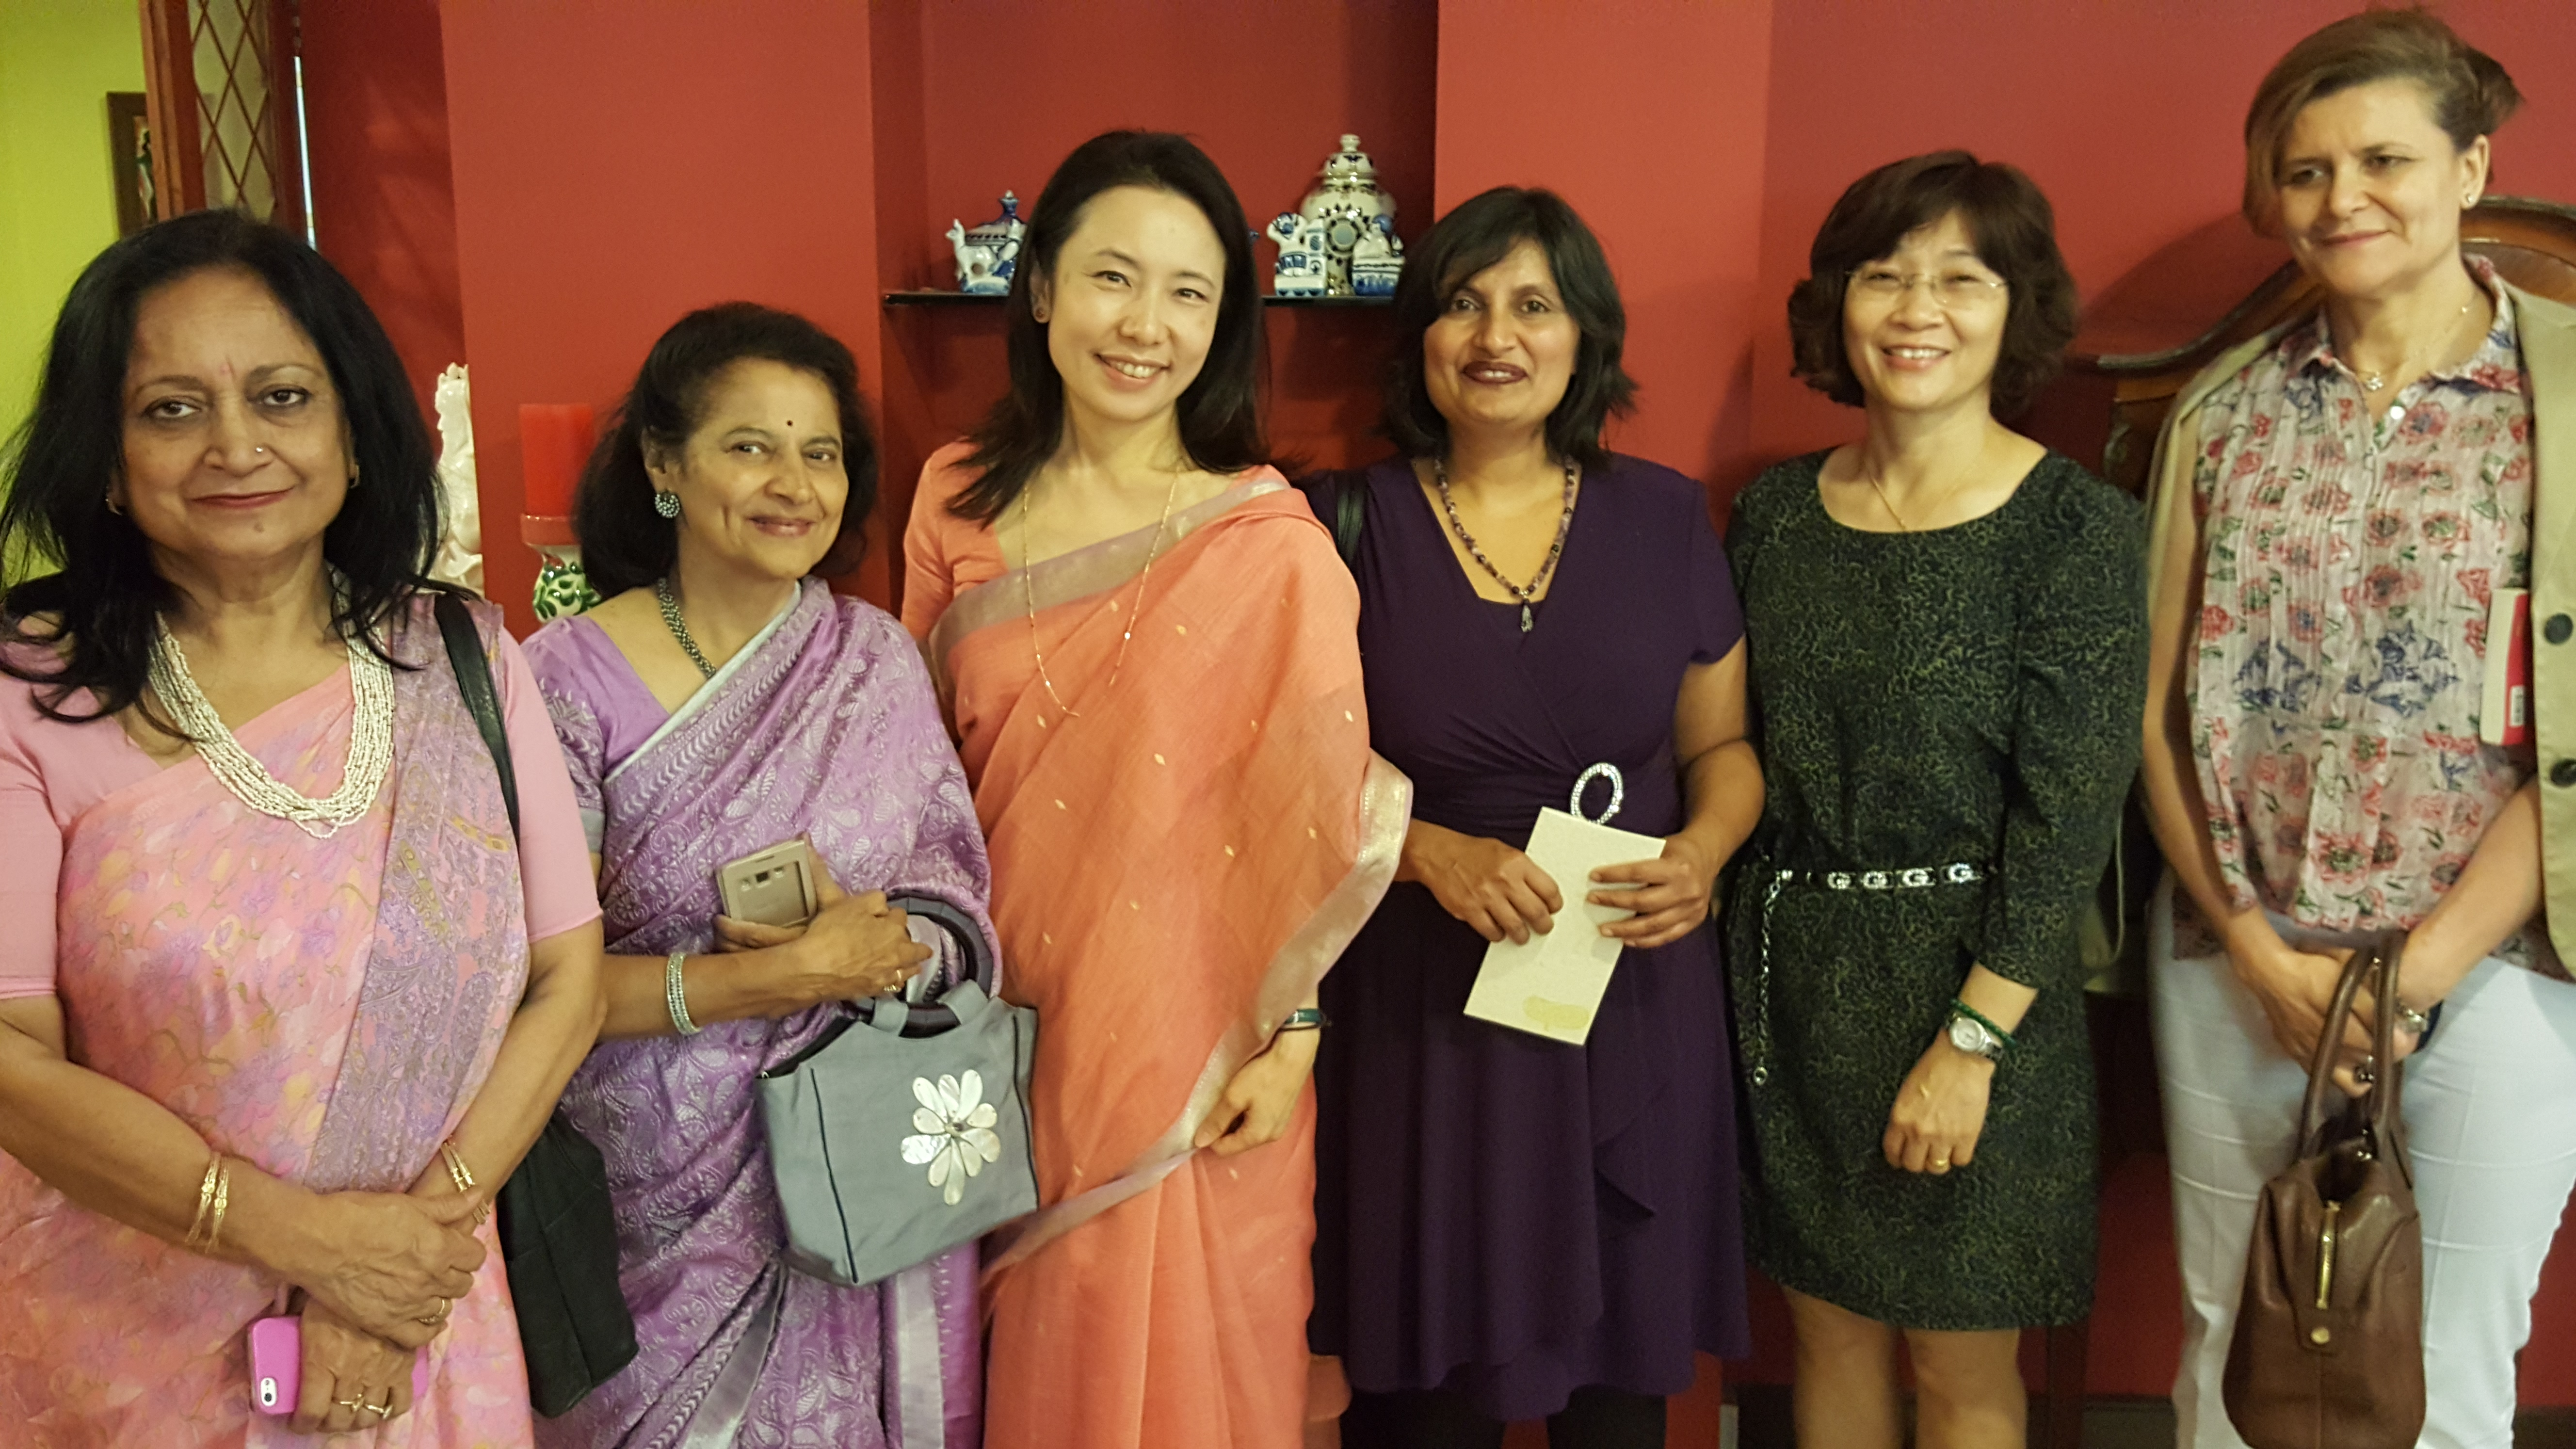 With Ms. Kyoko Jaishankar and members of EASA book club